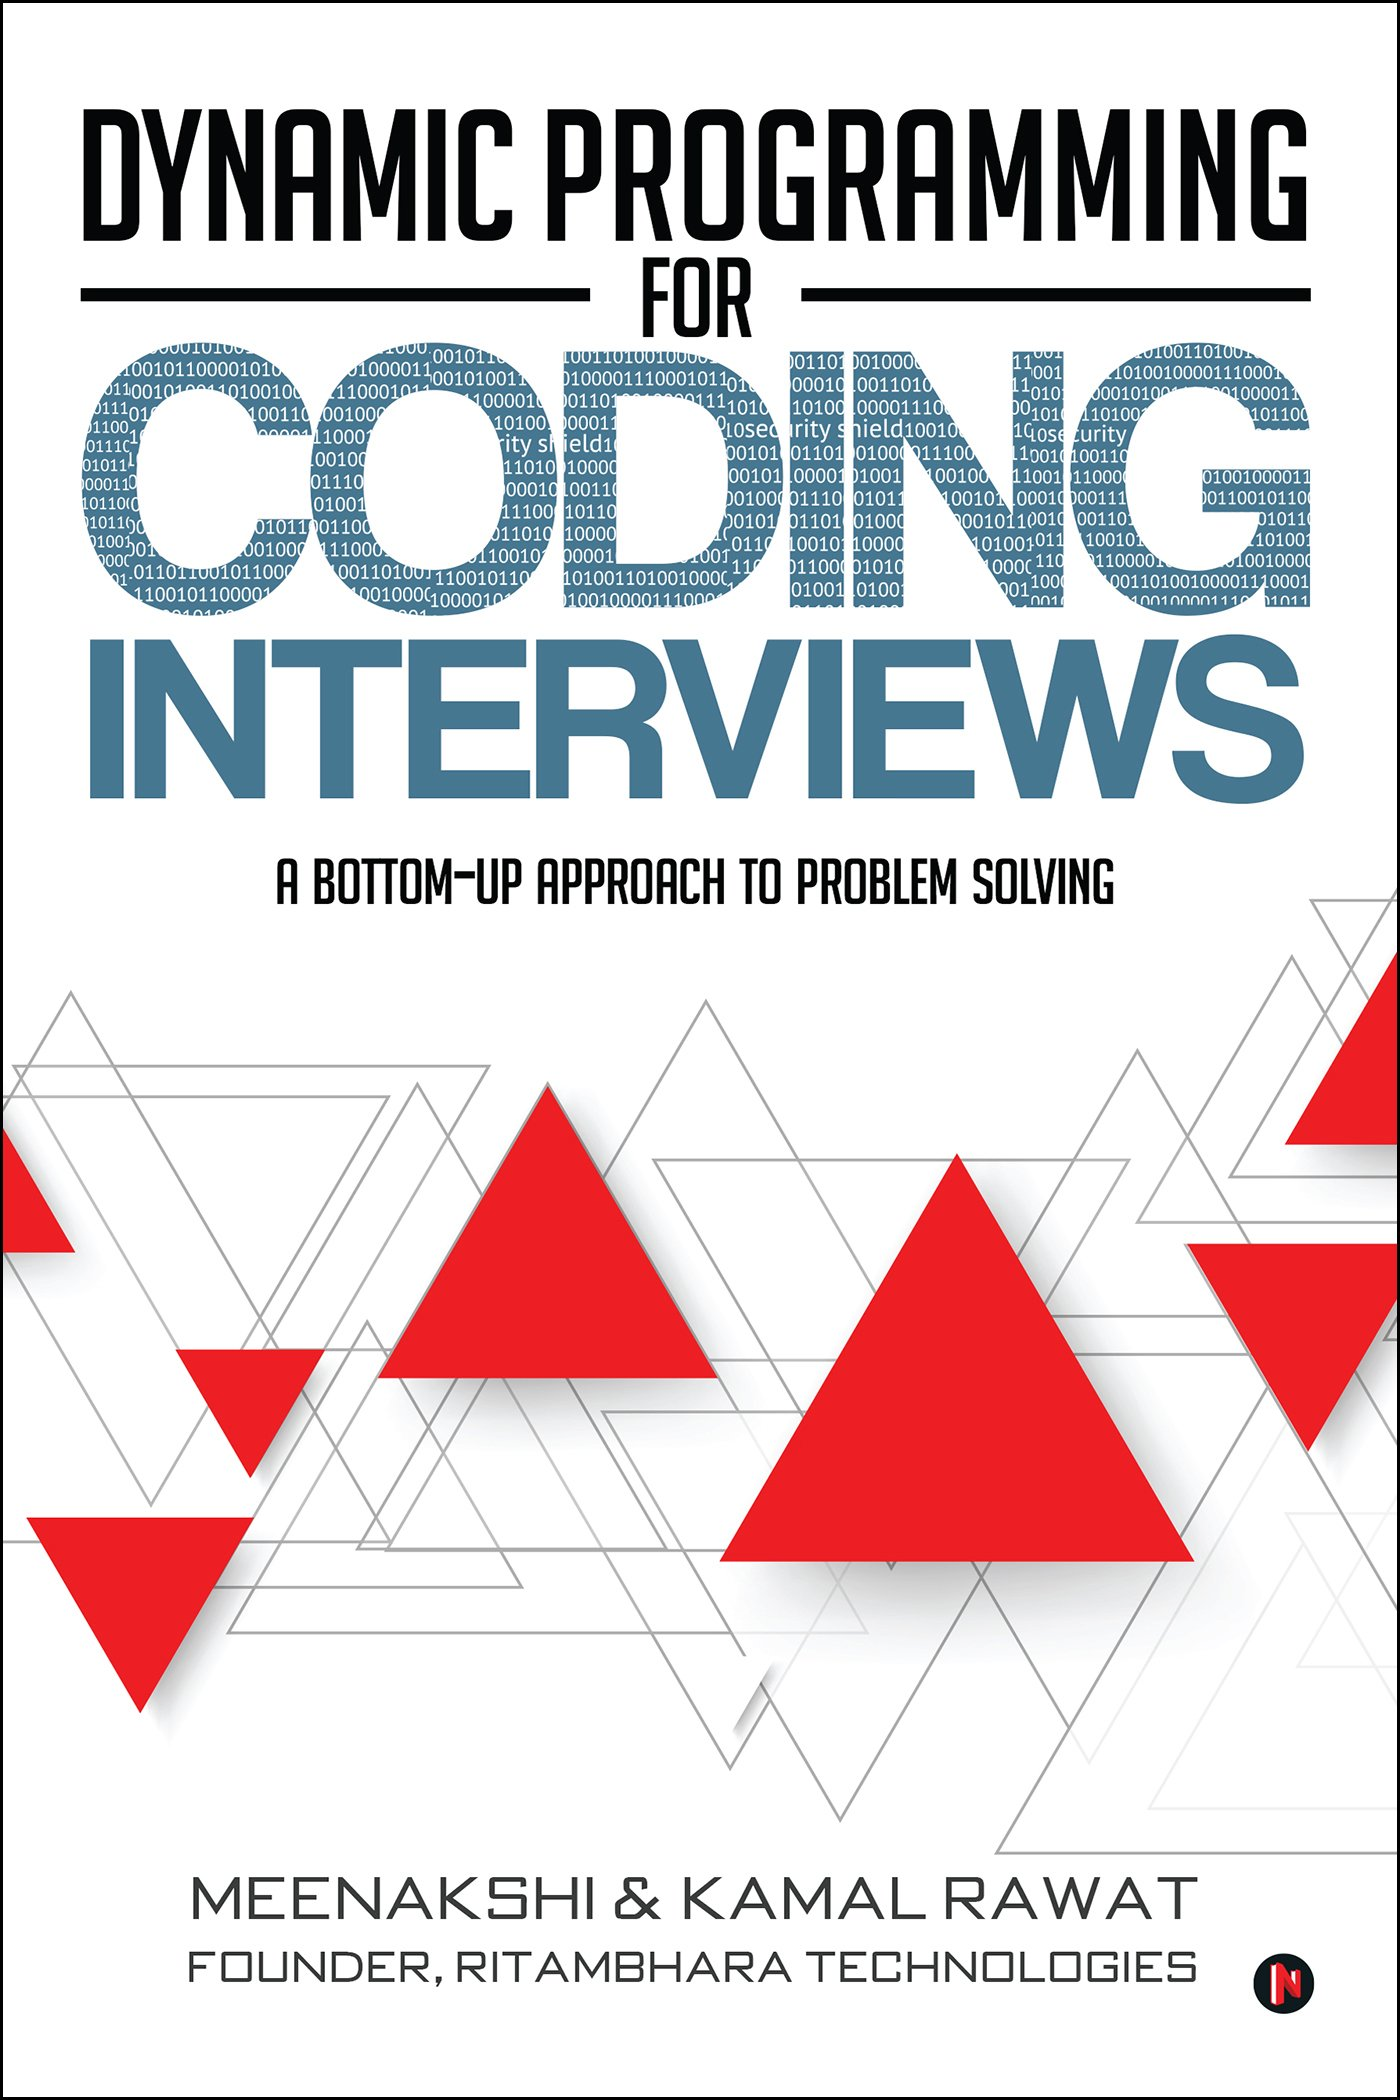 ritambhara technologies coding interview preparations recent interview questions